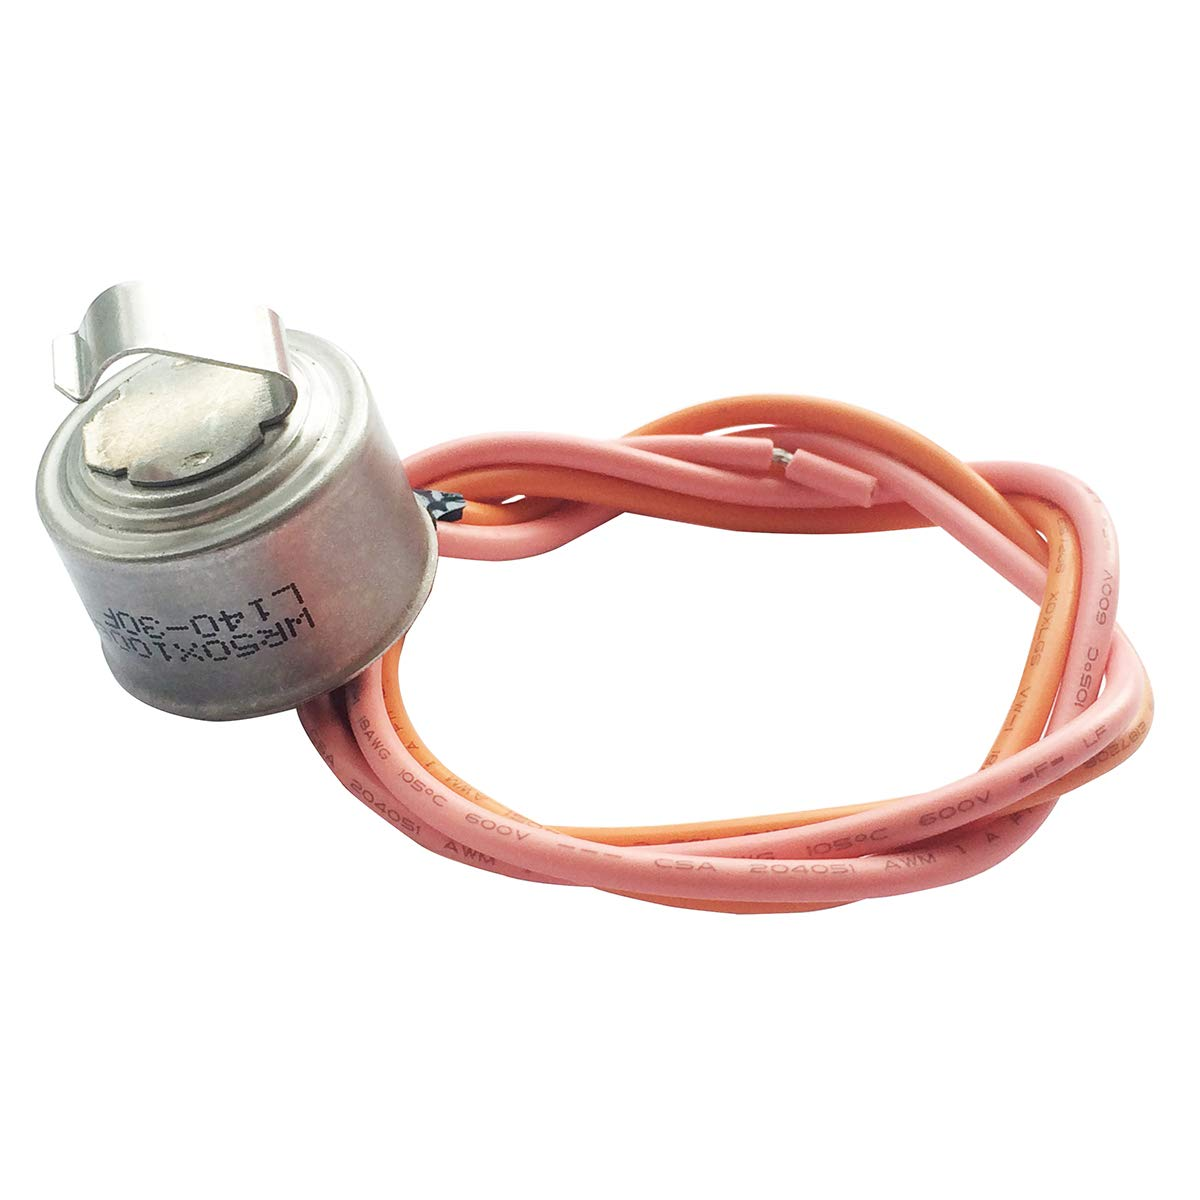 LONYE WR50X10068 Refrigerator Defrost Thermostat for GE Hotpoint Refrigerator L140-30F AP3884317 PS1017716 WR50X10028